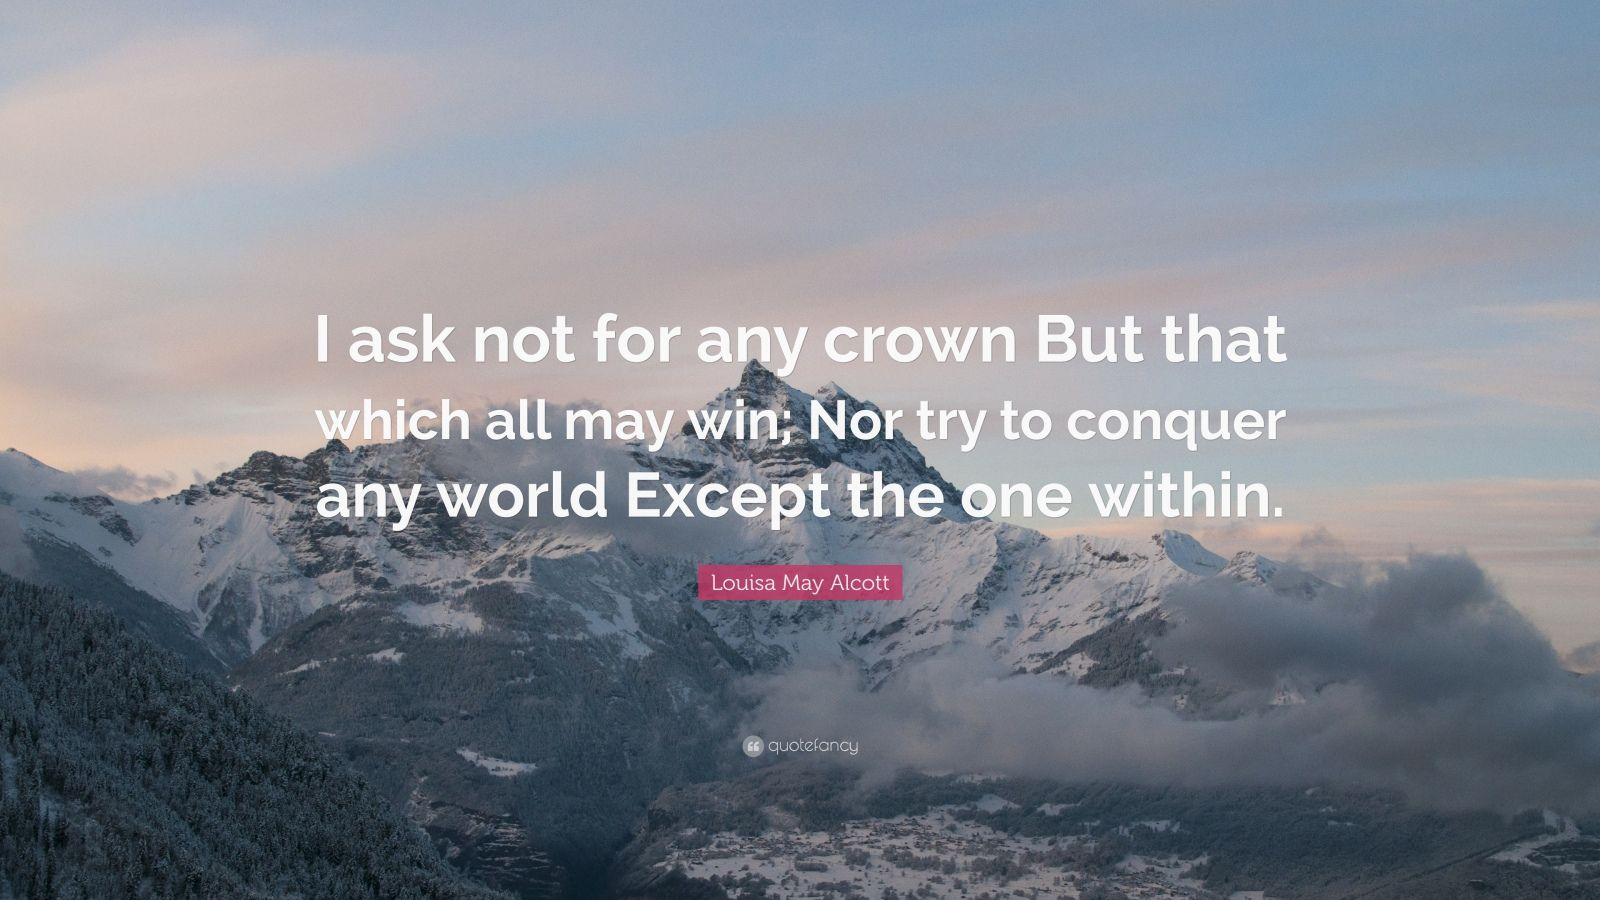 """Louisa May Alcott Quote: """"I ask not for any crown But that which all may win; Nor try to conquer any world Except the one within."""""""